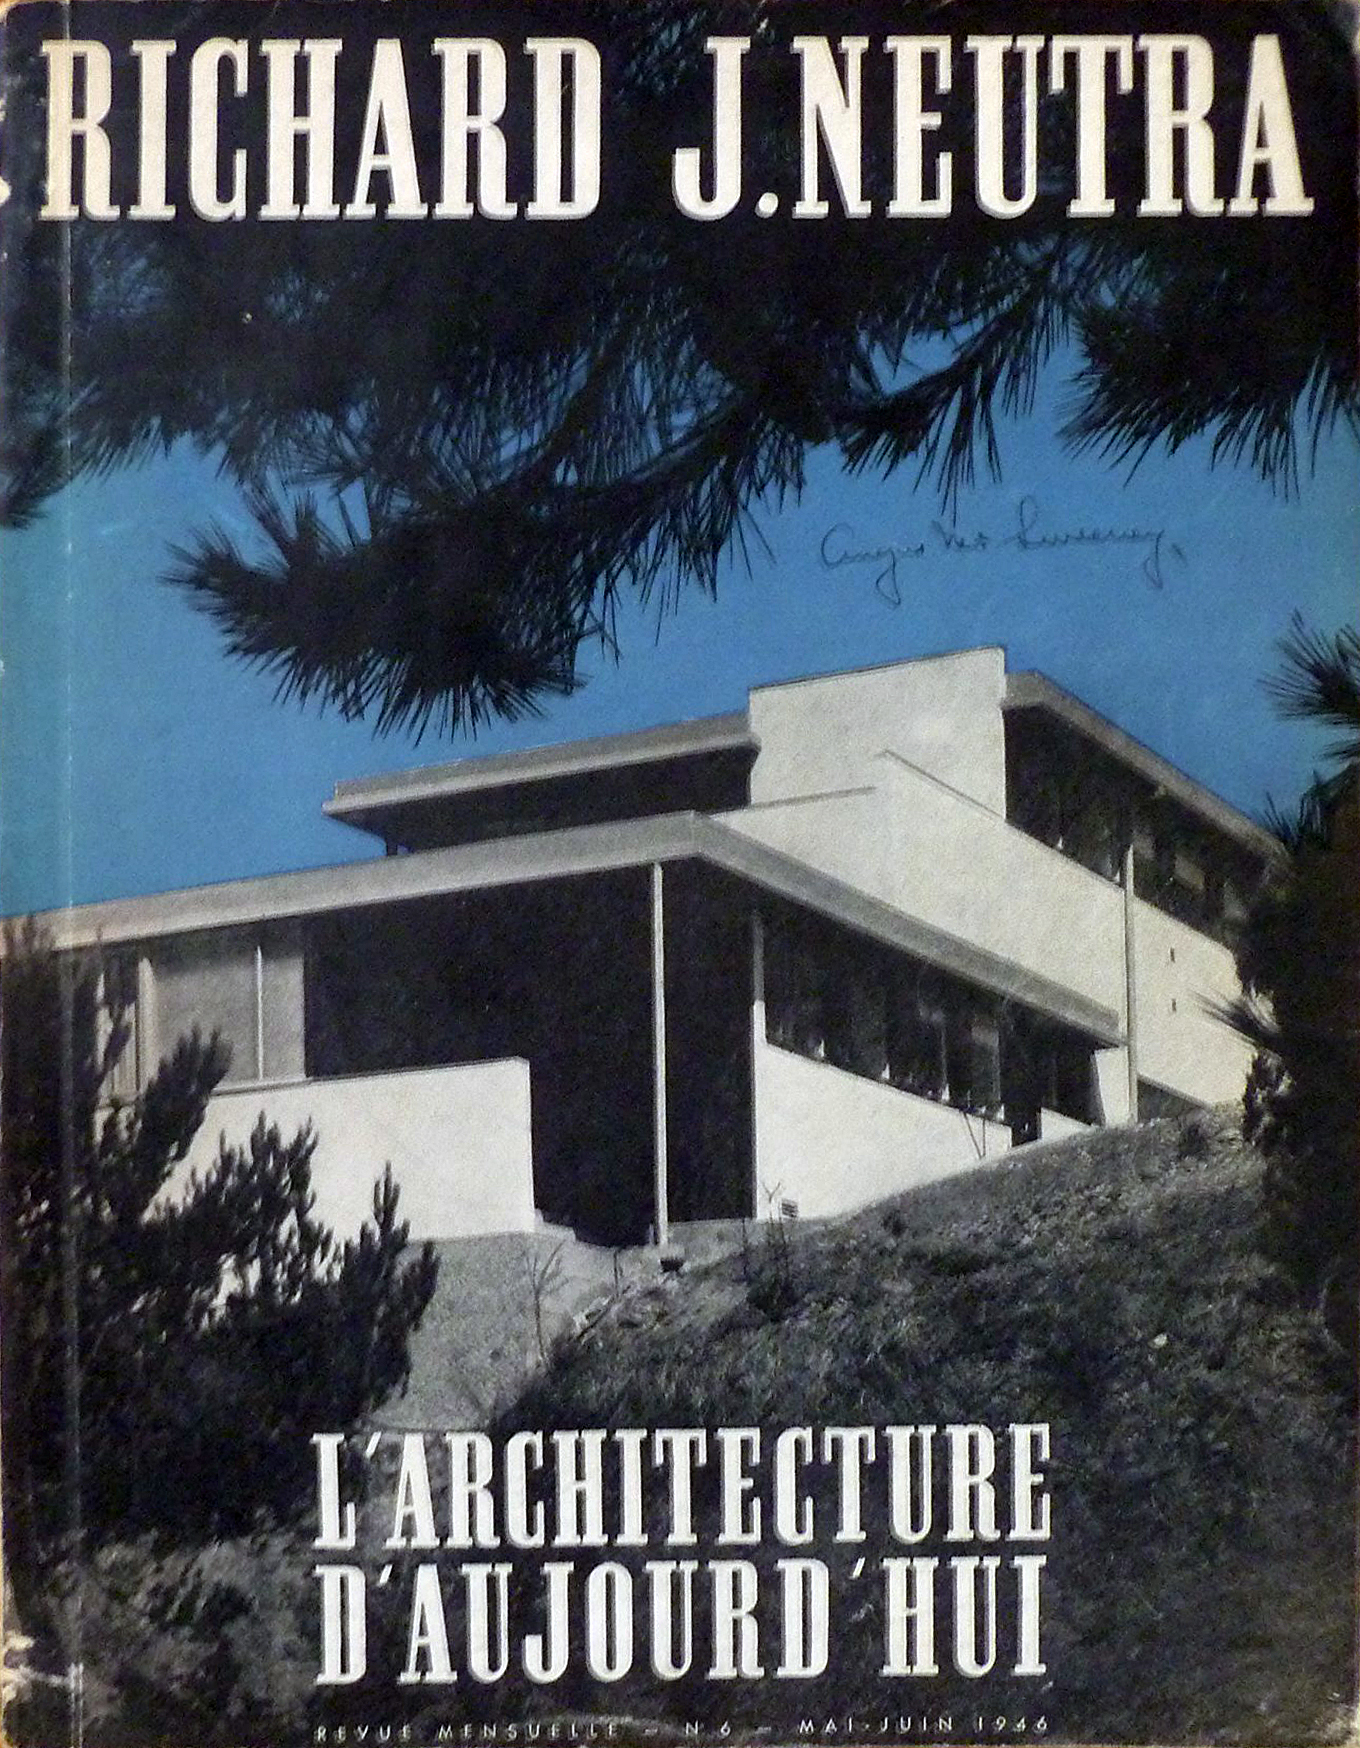 Richard J. Neutra, Architect (LArchitecture dAujourdhui, No. 6, Mai-Juin 1946)  by  Richard Neutra